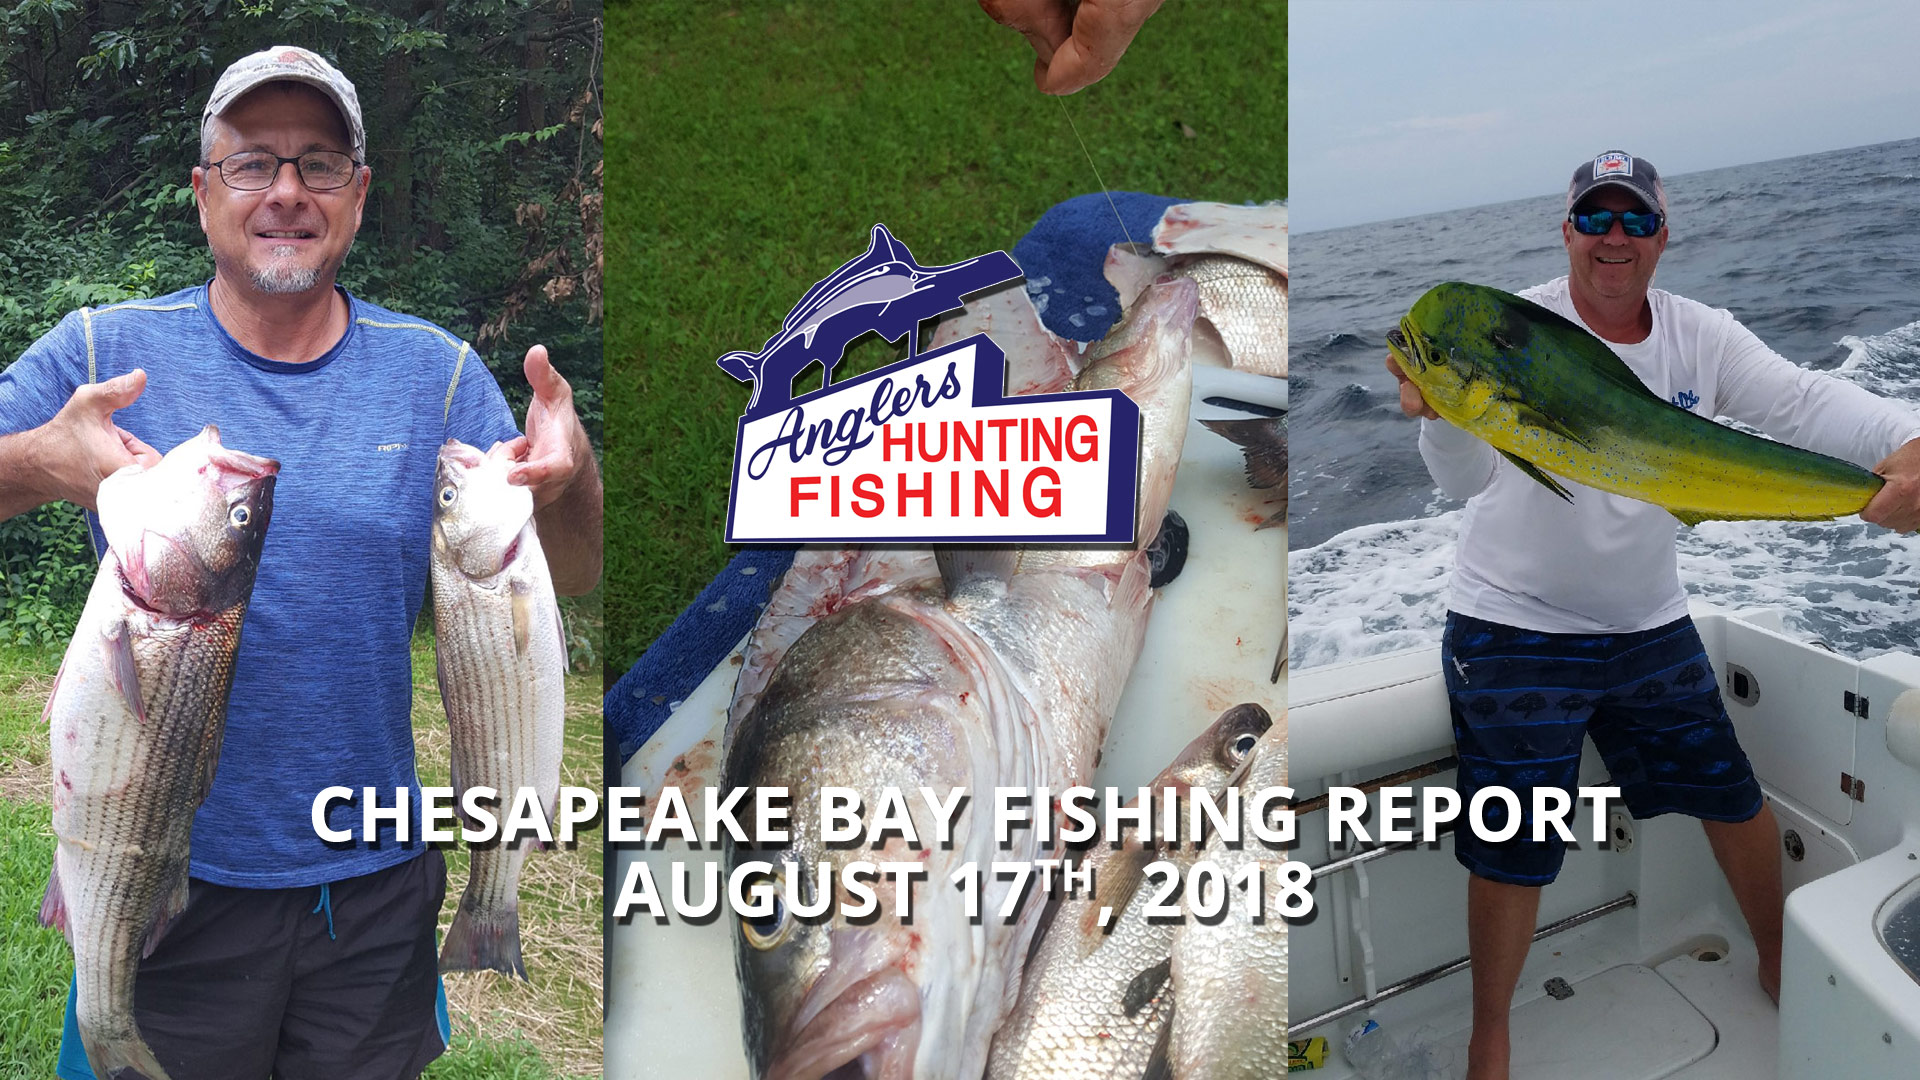 Chesapeake Bay Fishing Report, August 17th, 2018